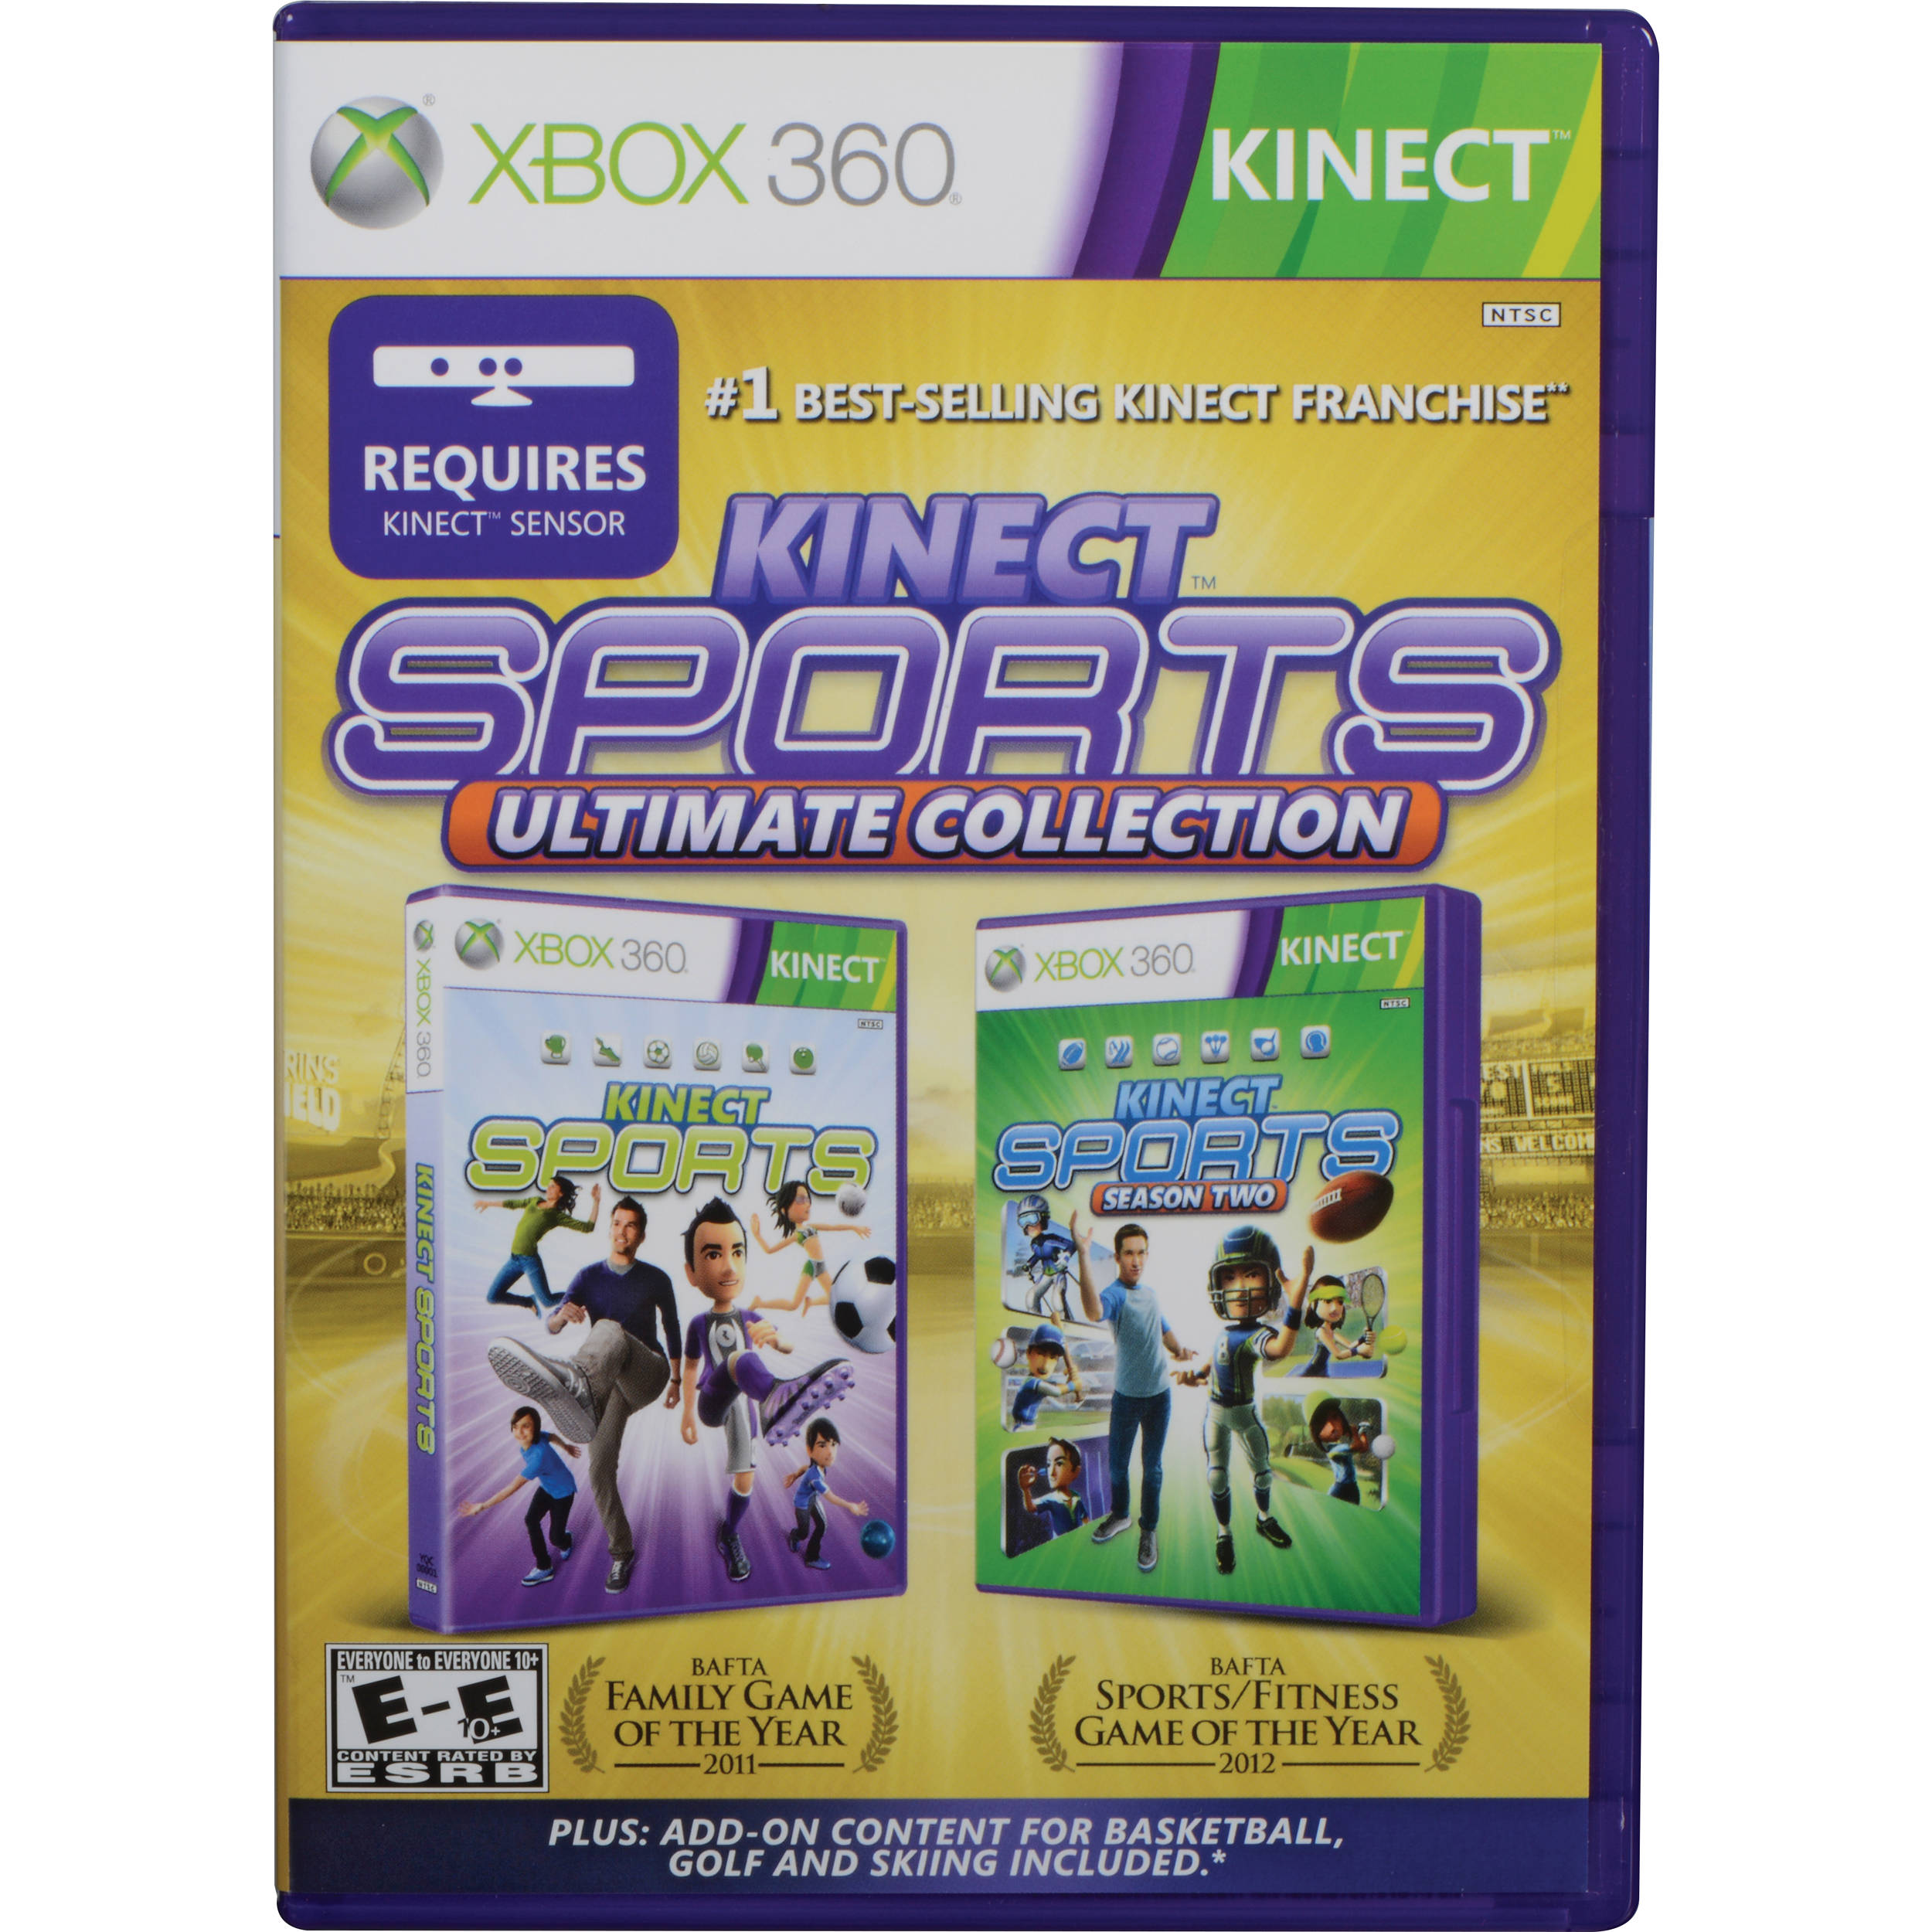 Ultimate Collection Jpg: Microsoft Kinect Sports Ultimate Collection (Xbox 360) 4GS